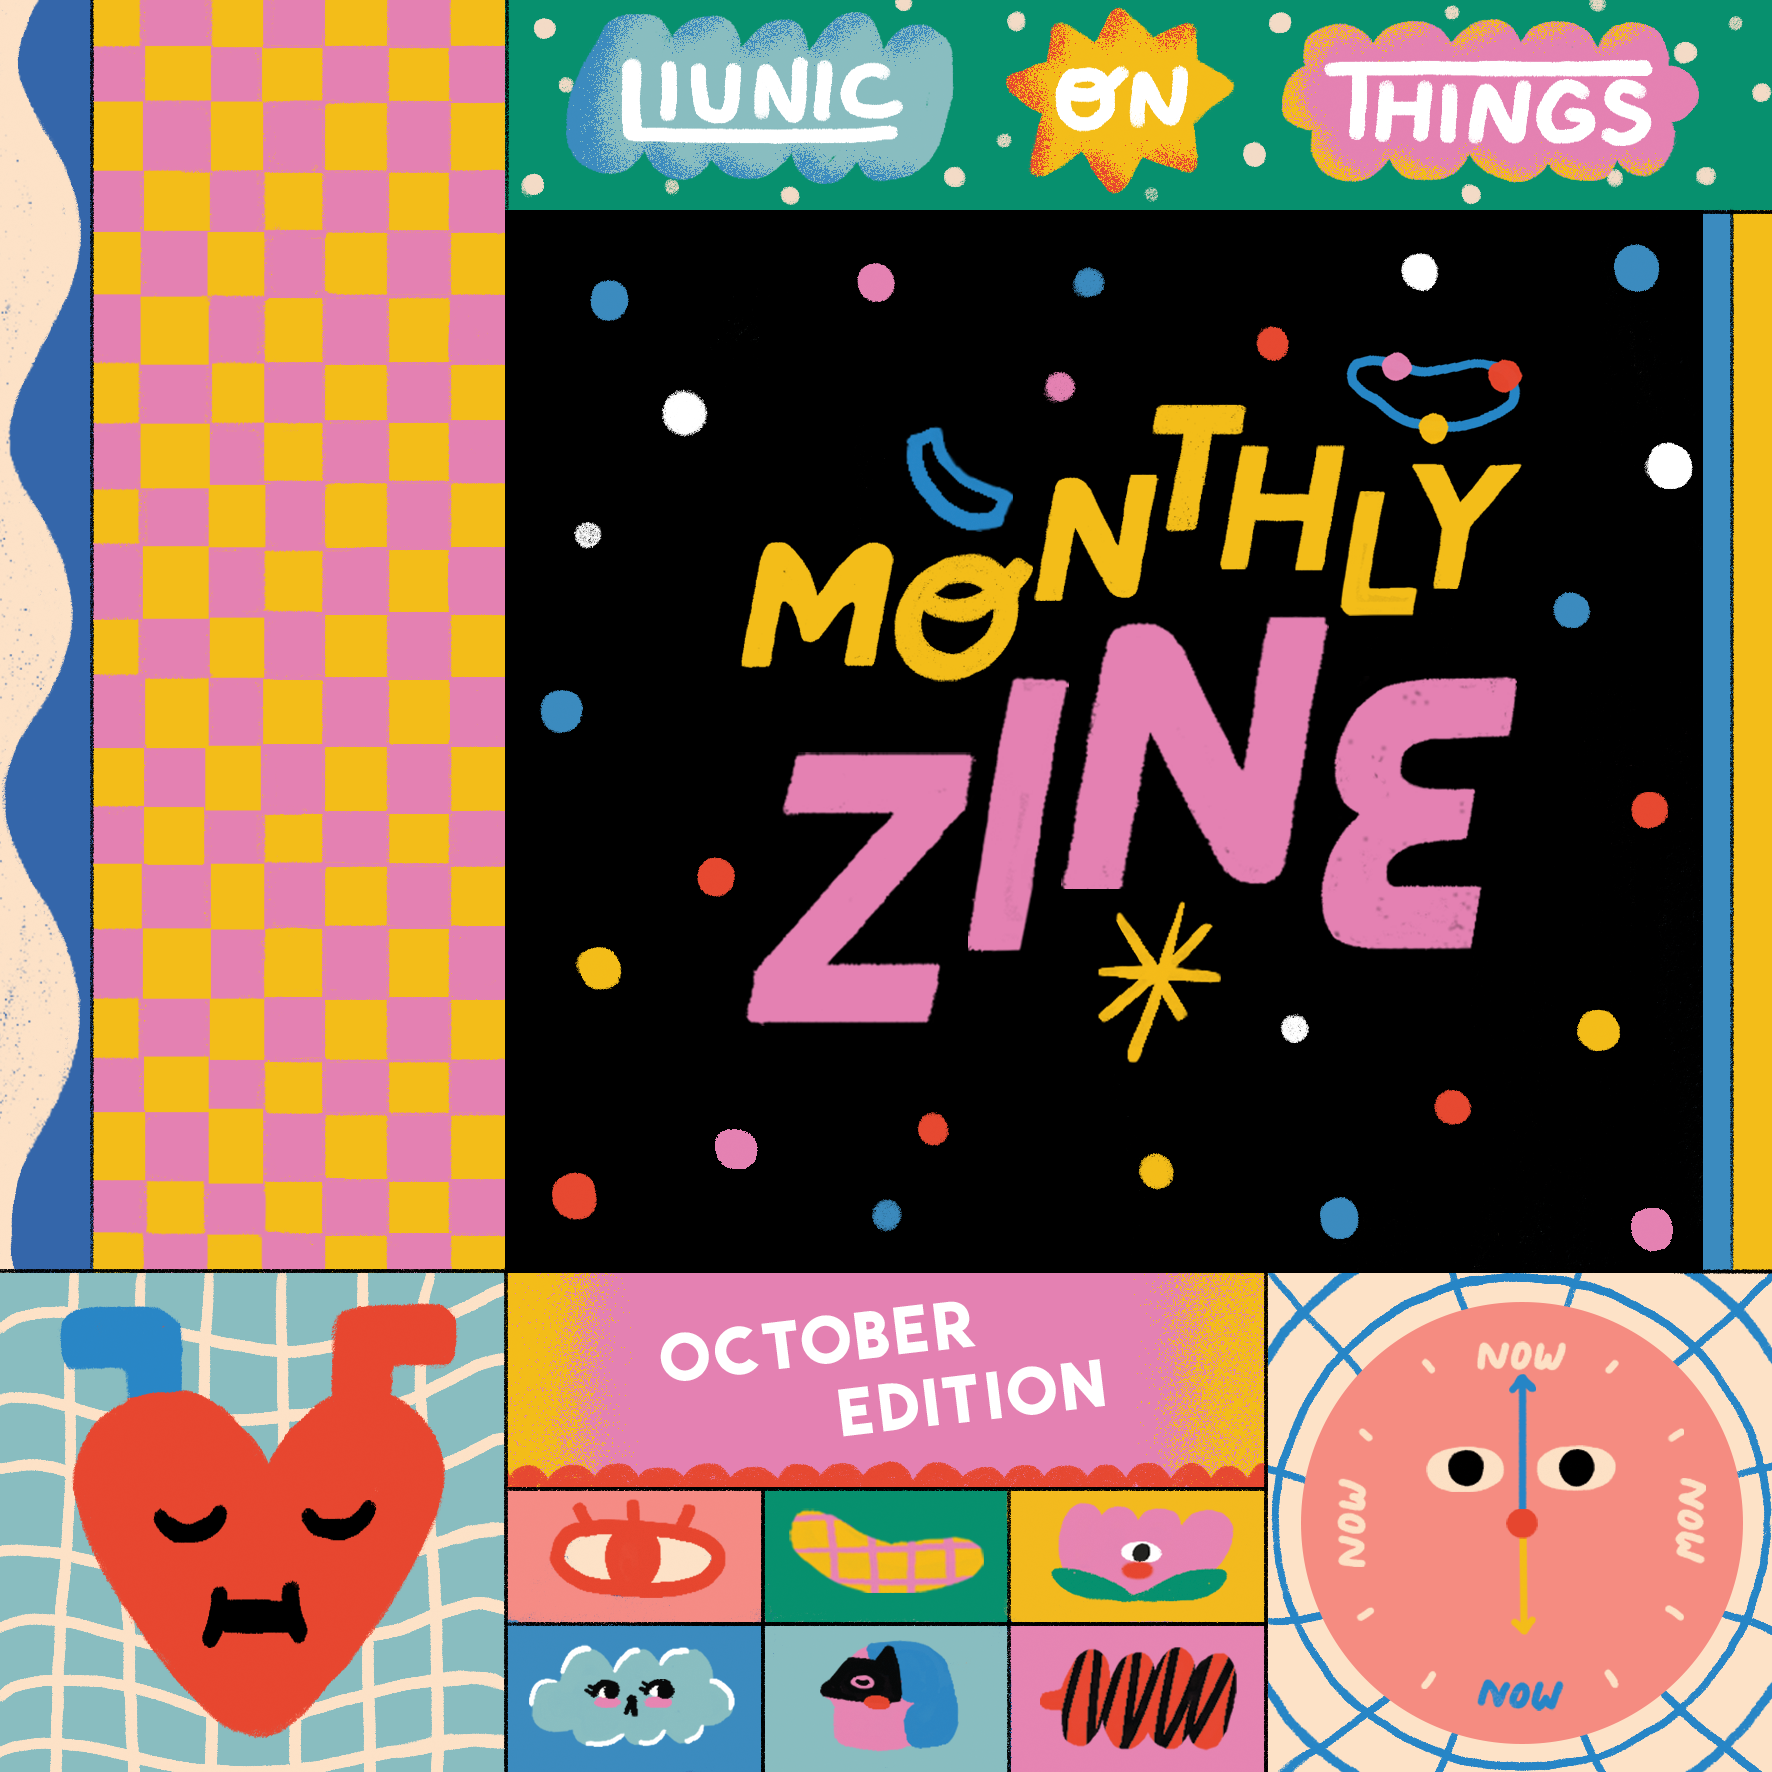 Liunic on Things Monthly Zine: October Edition!